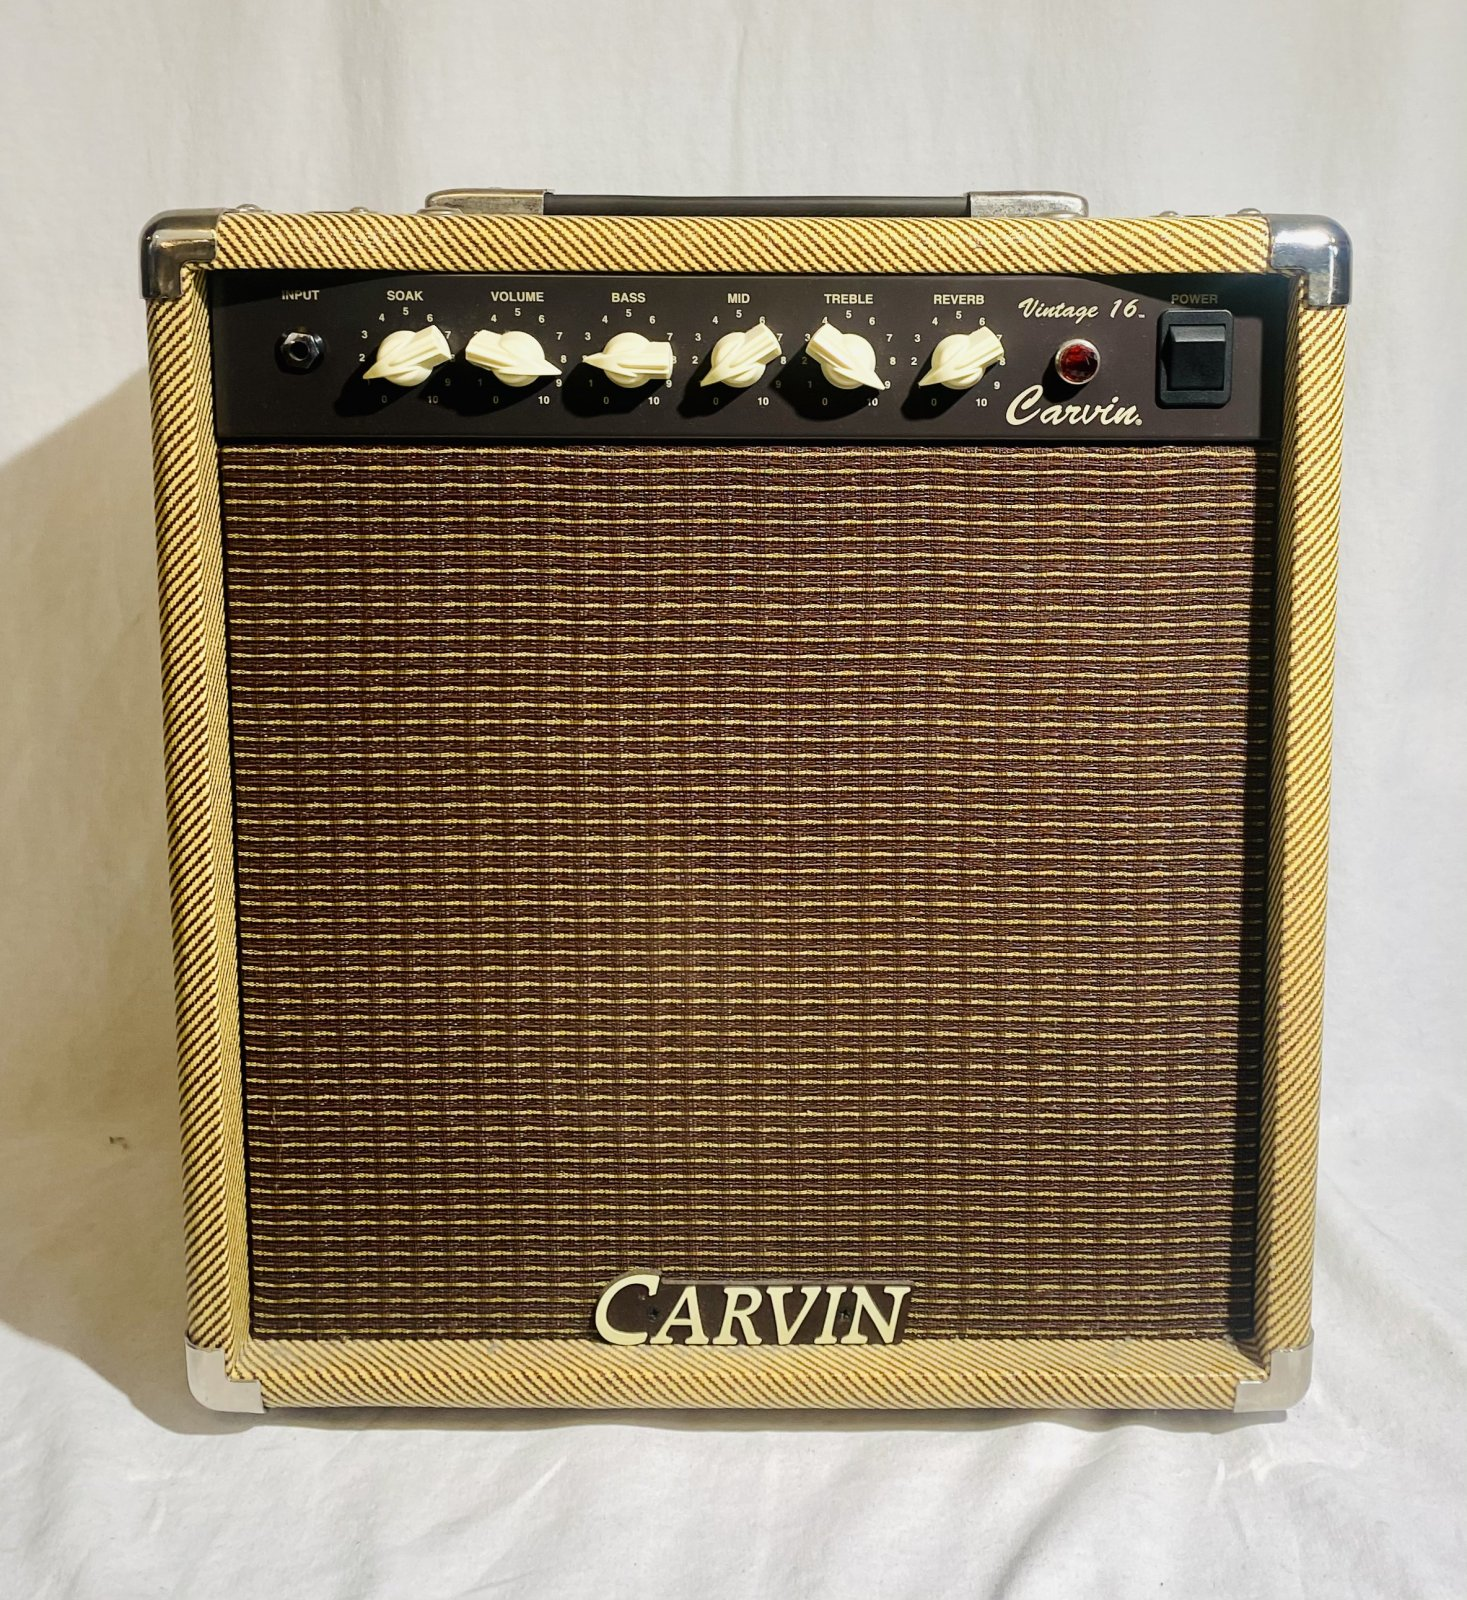 CARVIN VINTAGE 16 GUITAR AMP WITH SLIP COVER